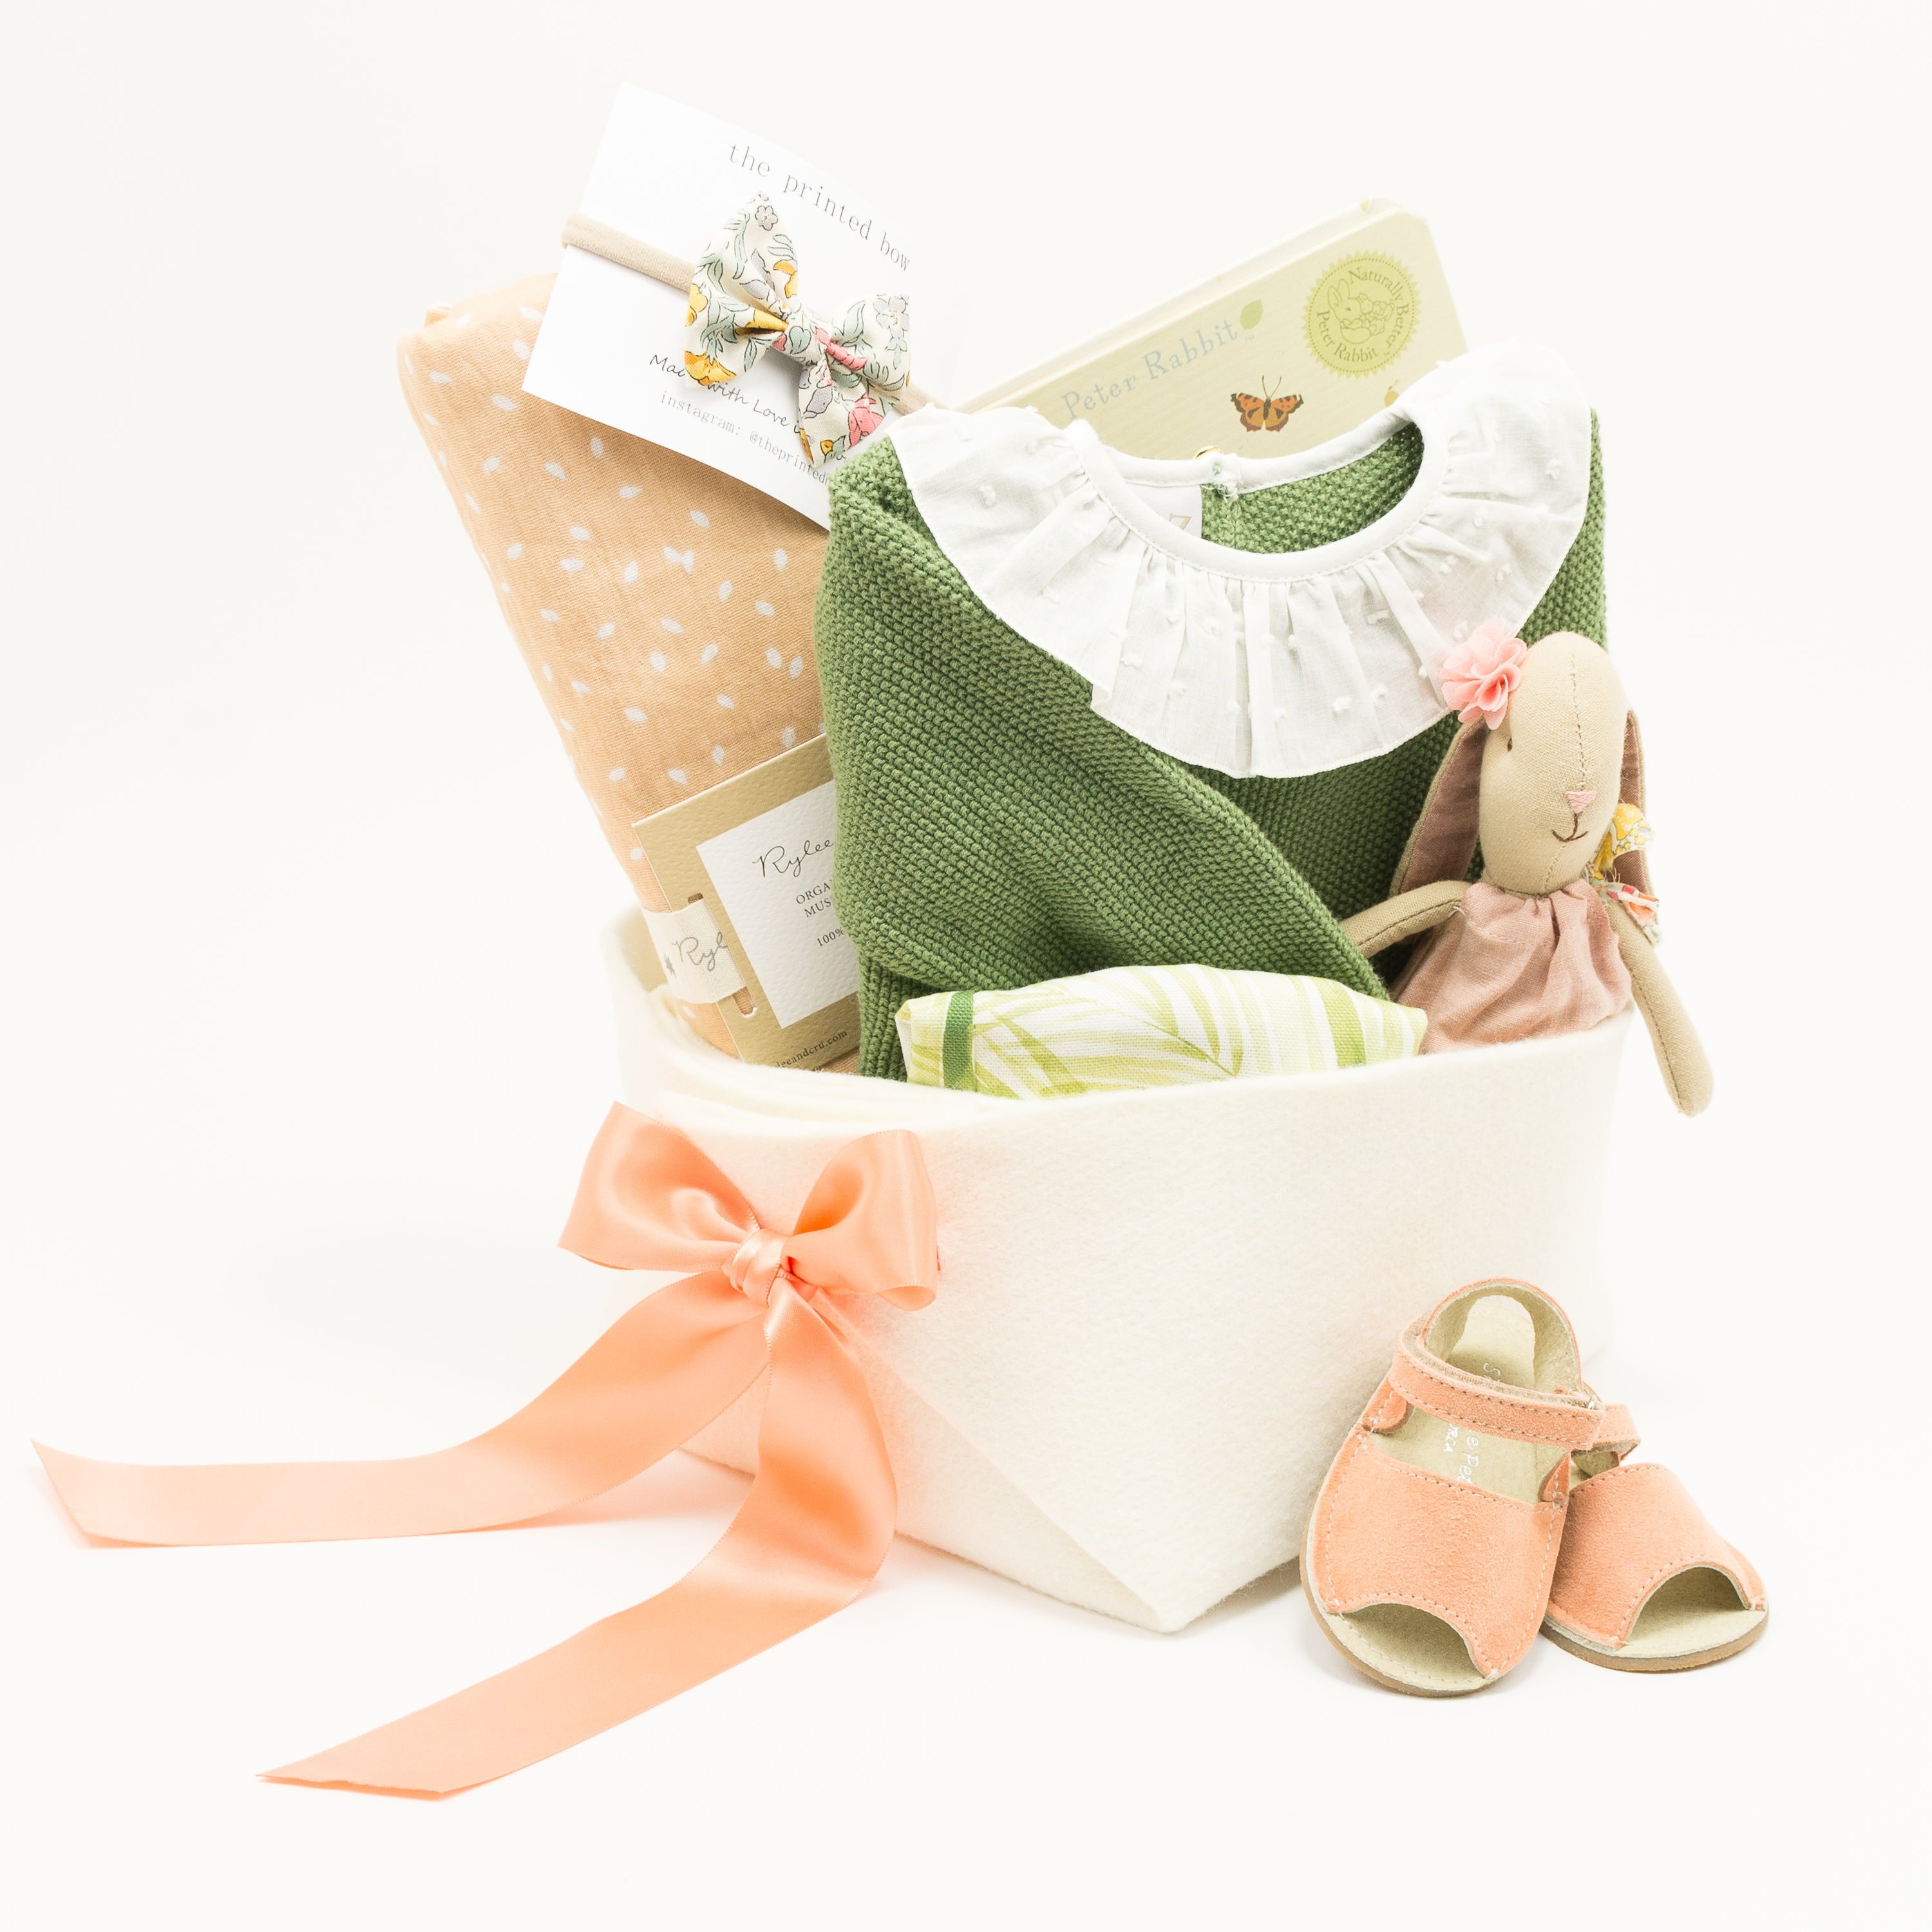 Baby Gift Basket for a Girl featuring Paz Rodriguez. Luxury Baby Gifts